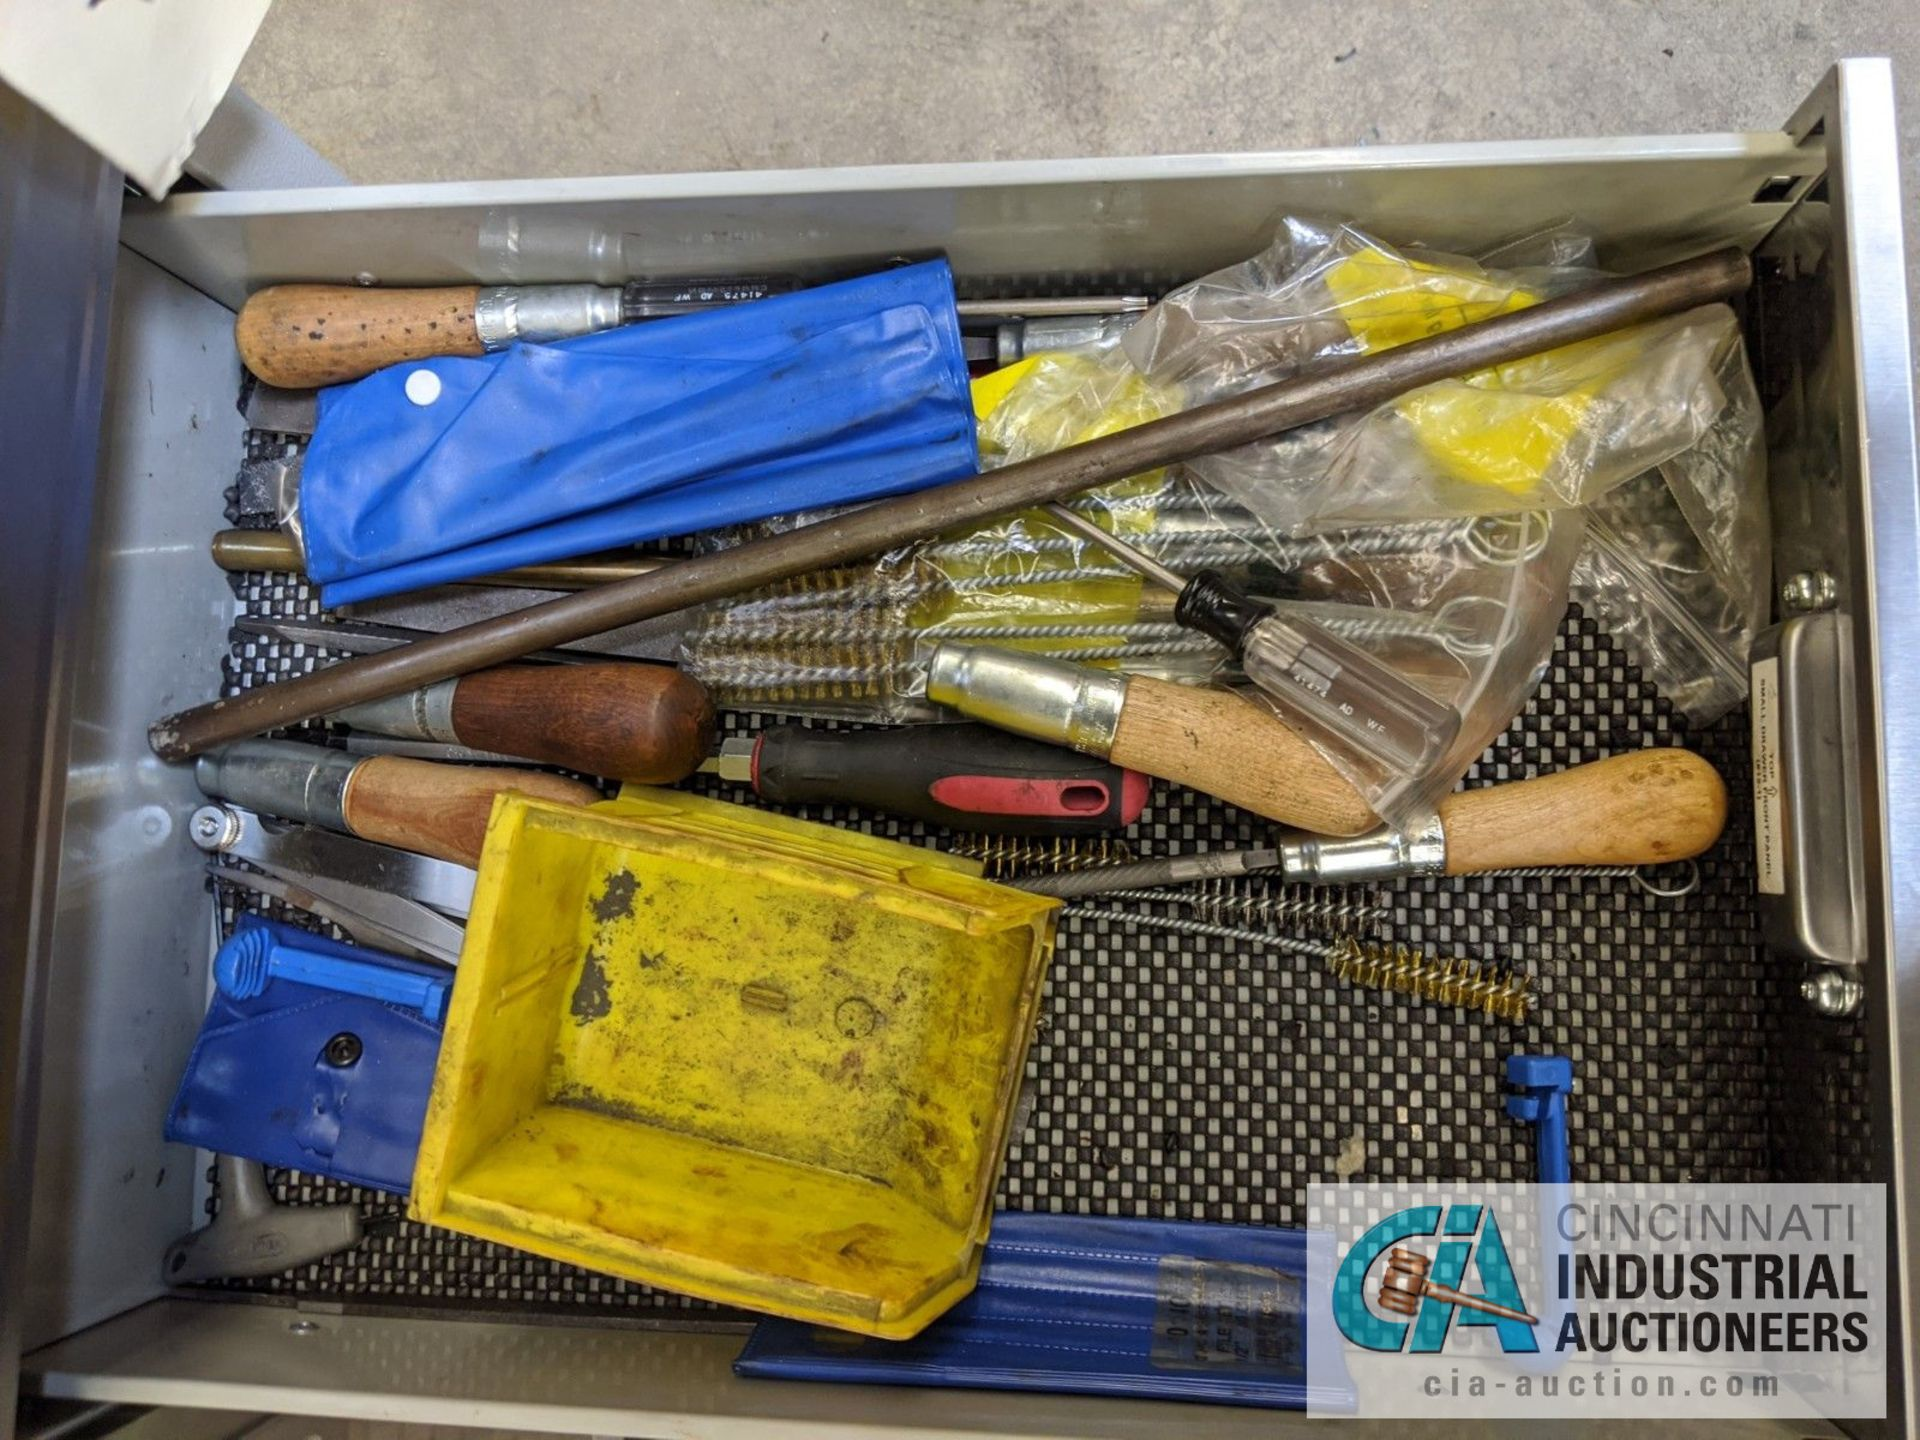 5-DRAWER PORTABLE BOX WITH CONTENTS - ASSORTED HAND TOOLS, MAPLE TOP - Image 5 of 7